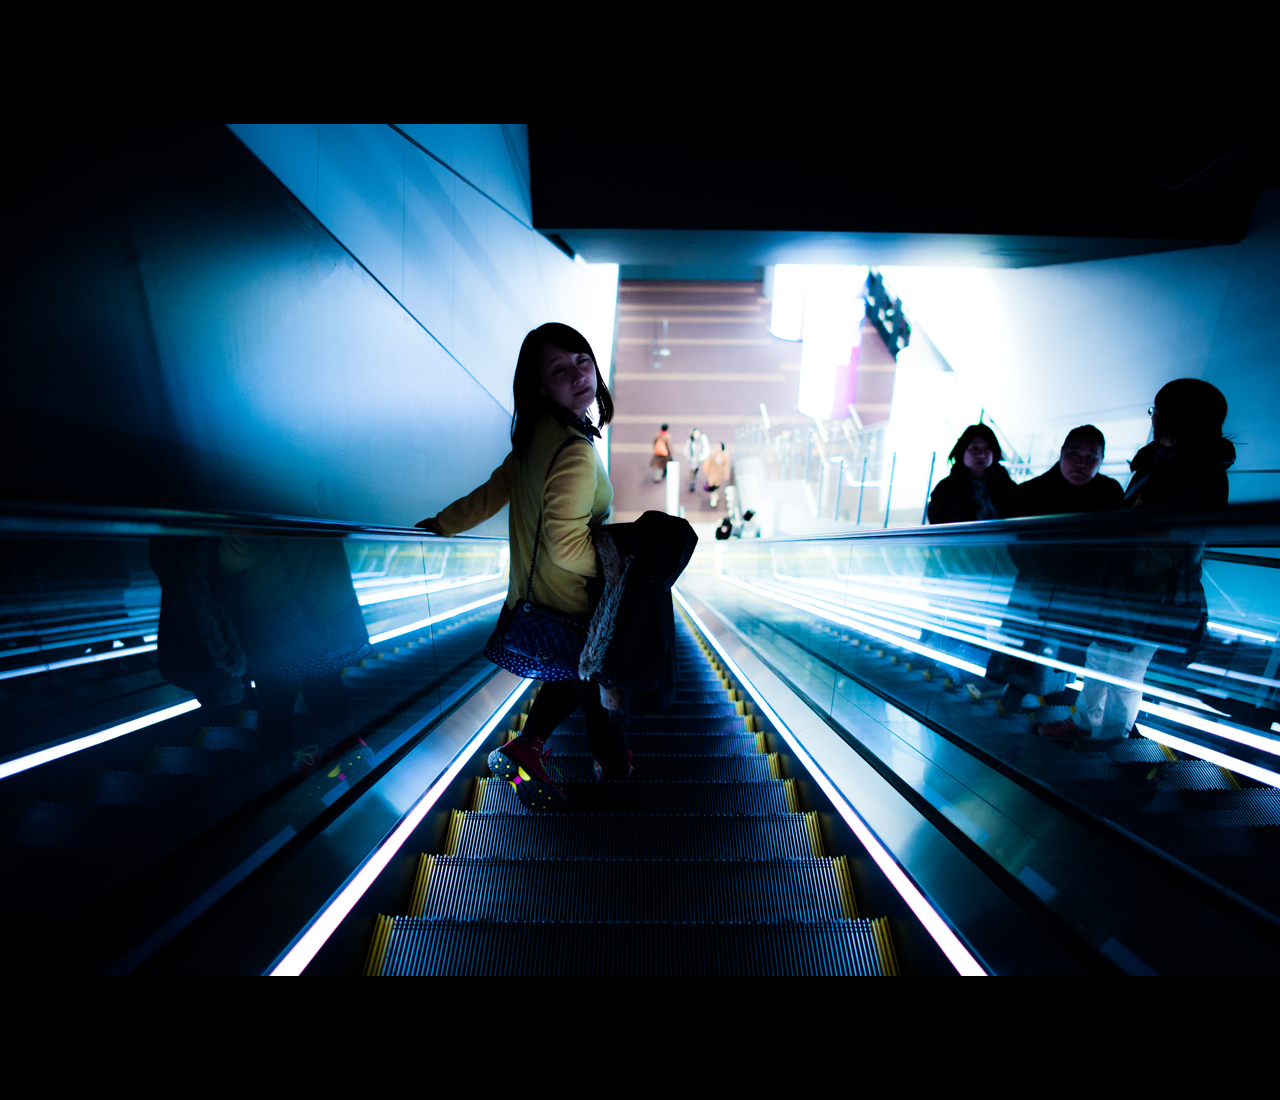 Escalator by burningmonk